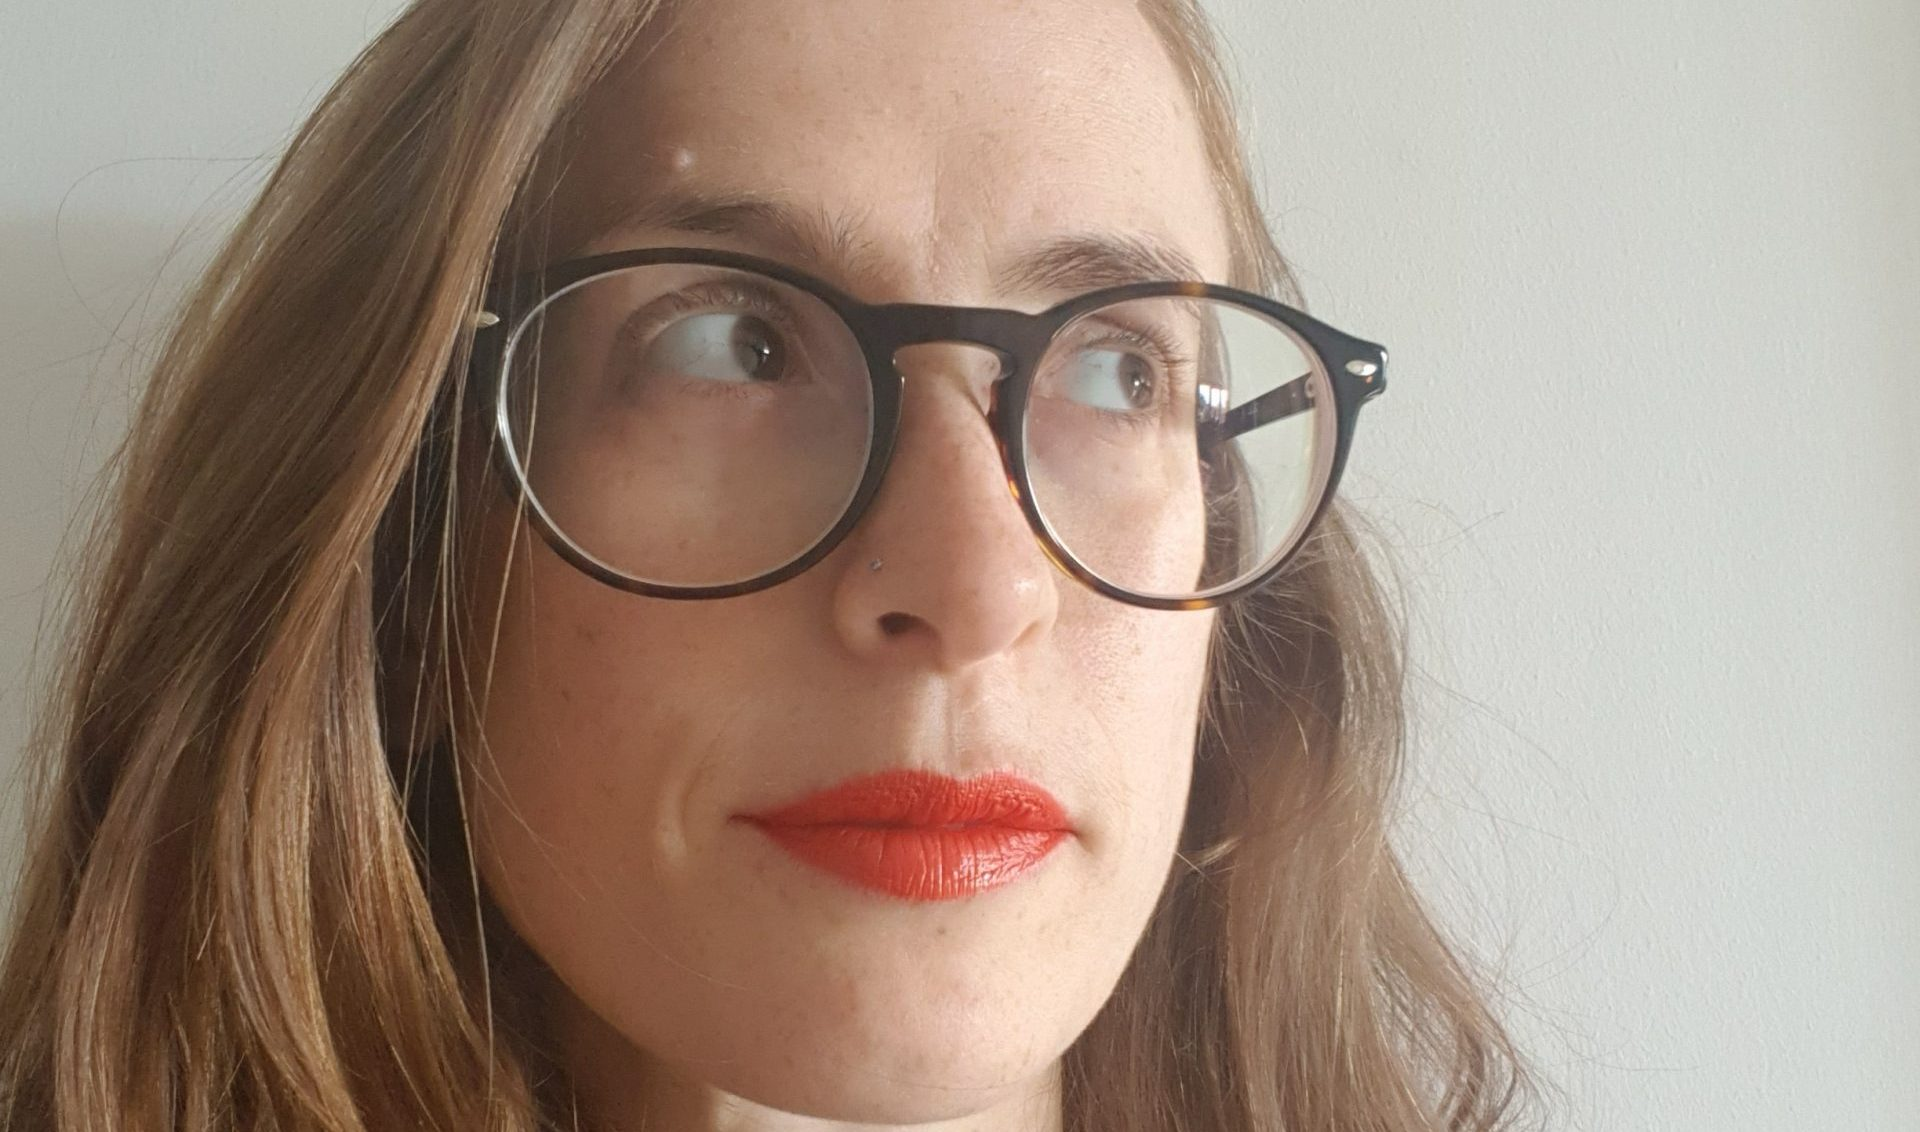 a person with long hair, red lipstick and glasses looking up